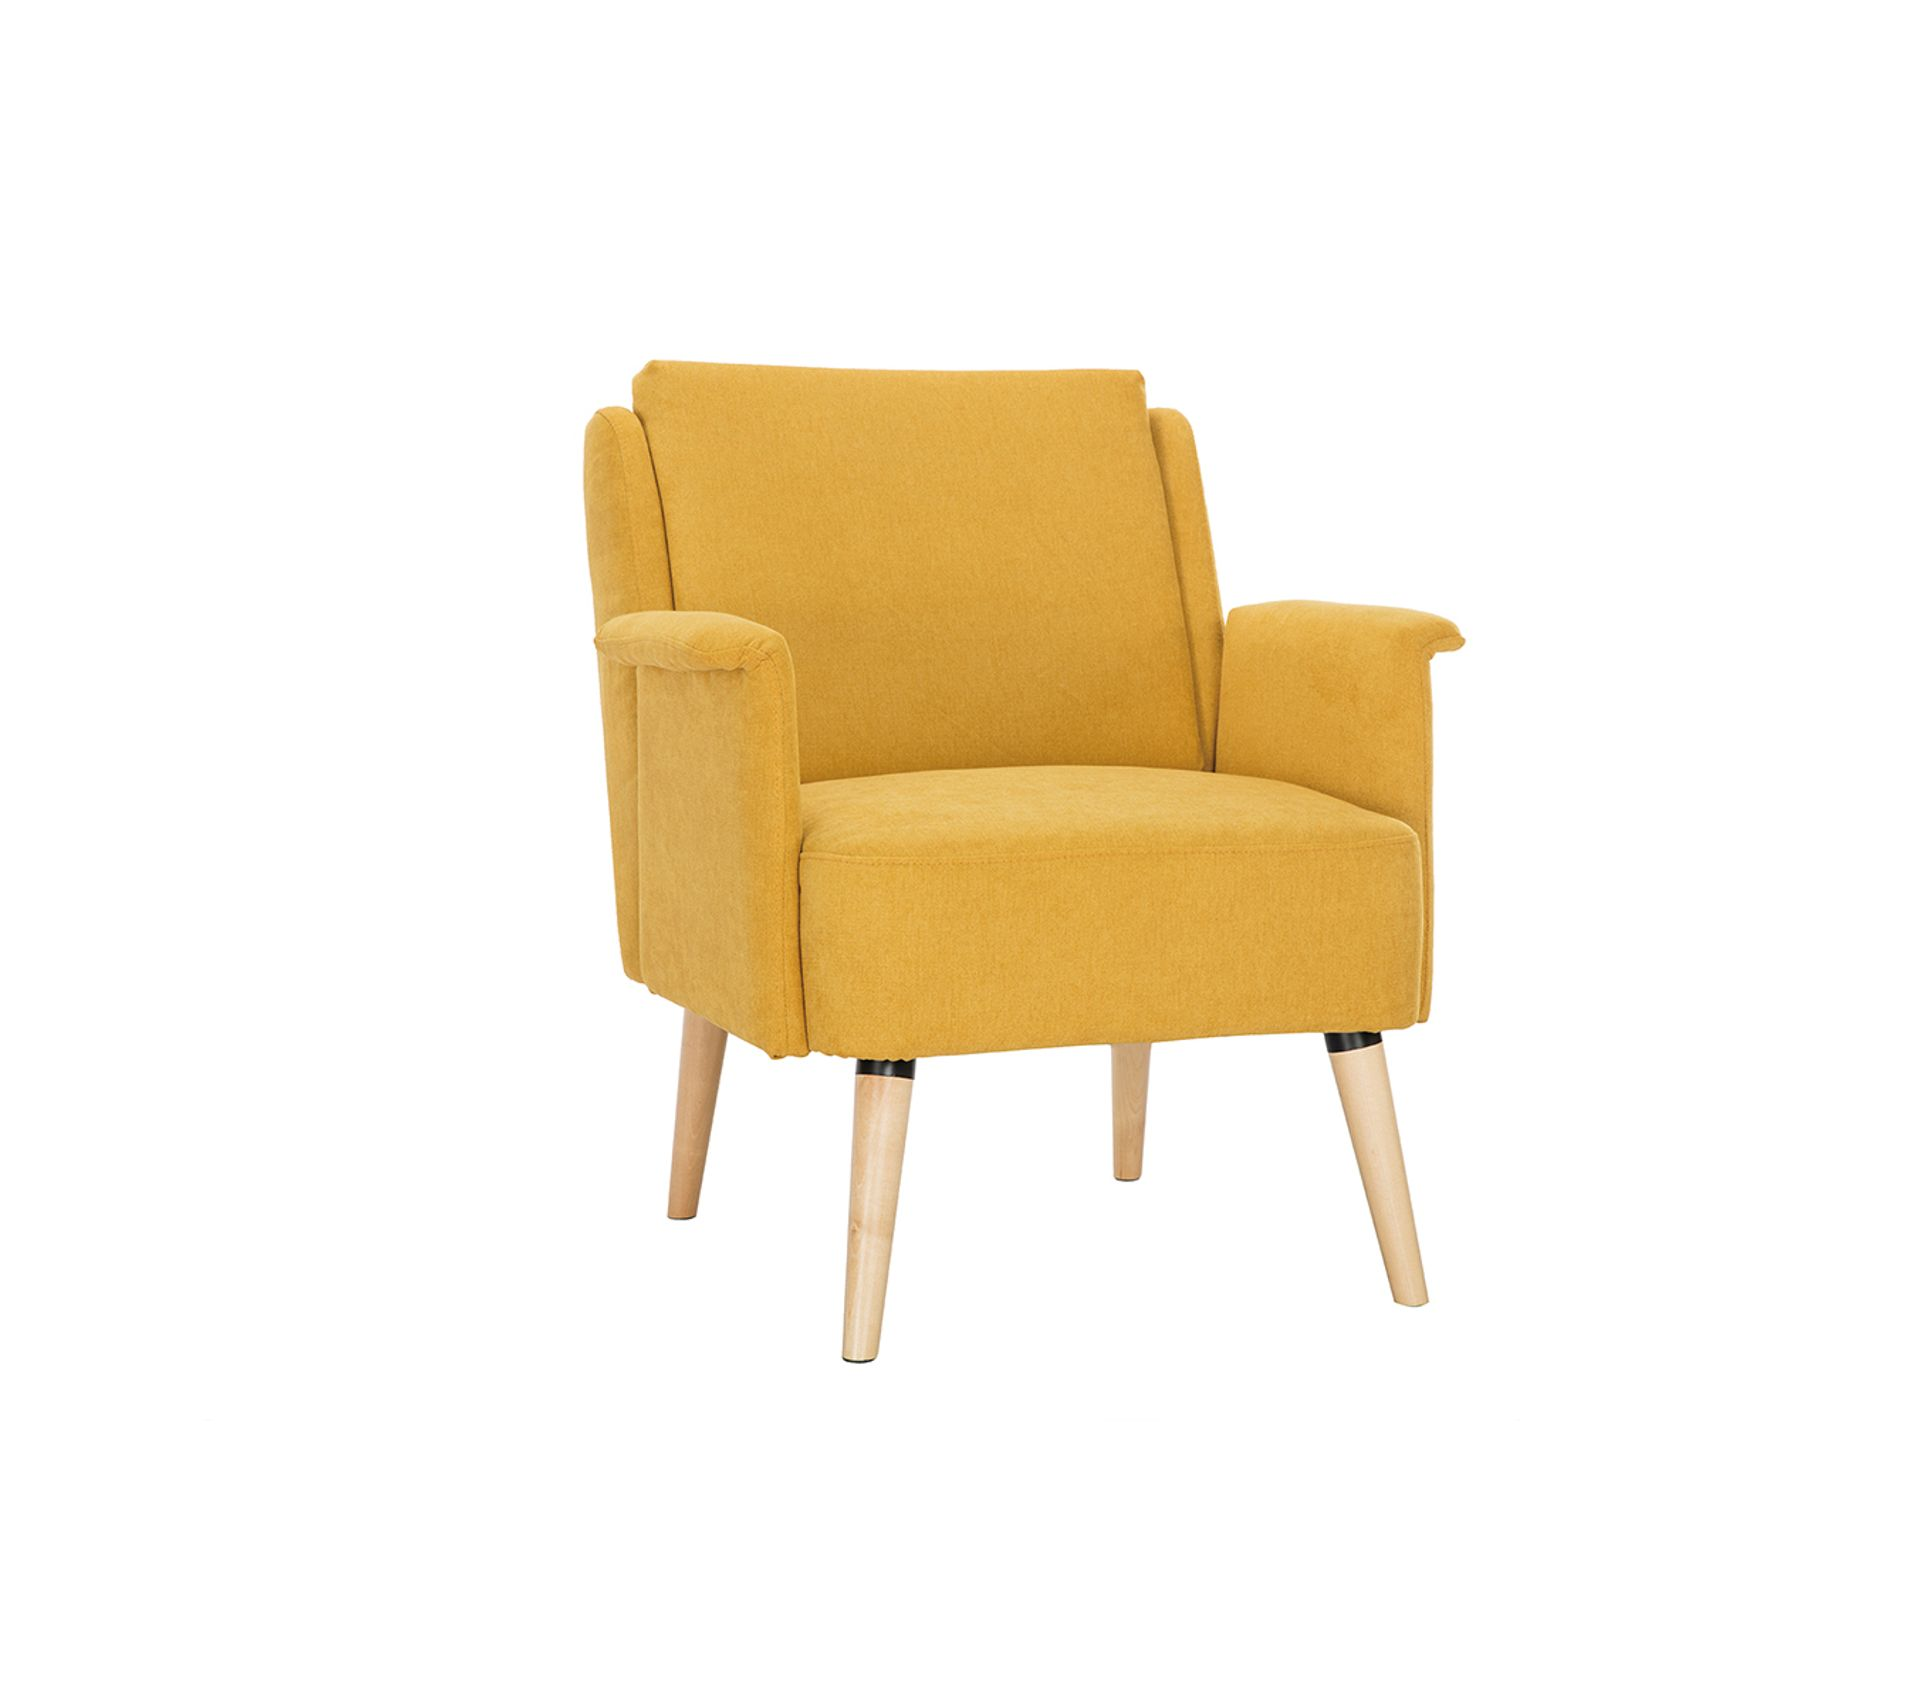 Fauteuil Relax Jaune Moutarde fauteuil design effet velours jaune moutarde aeola